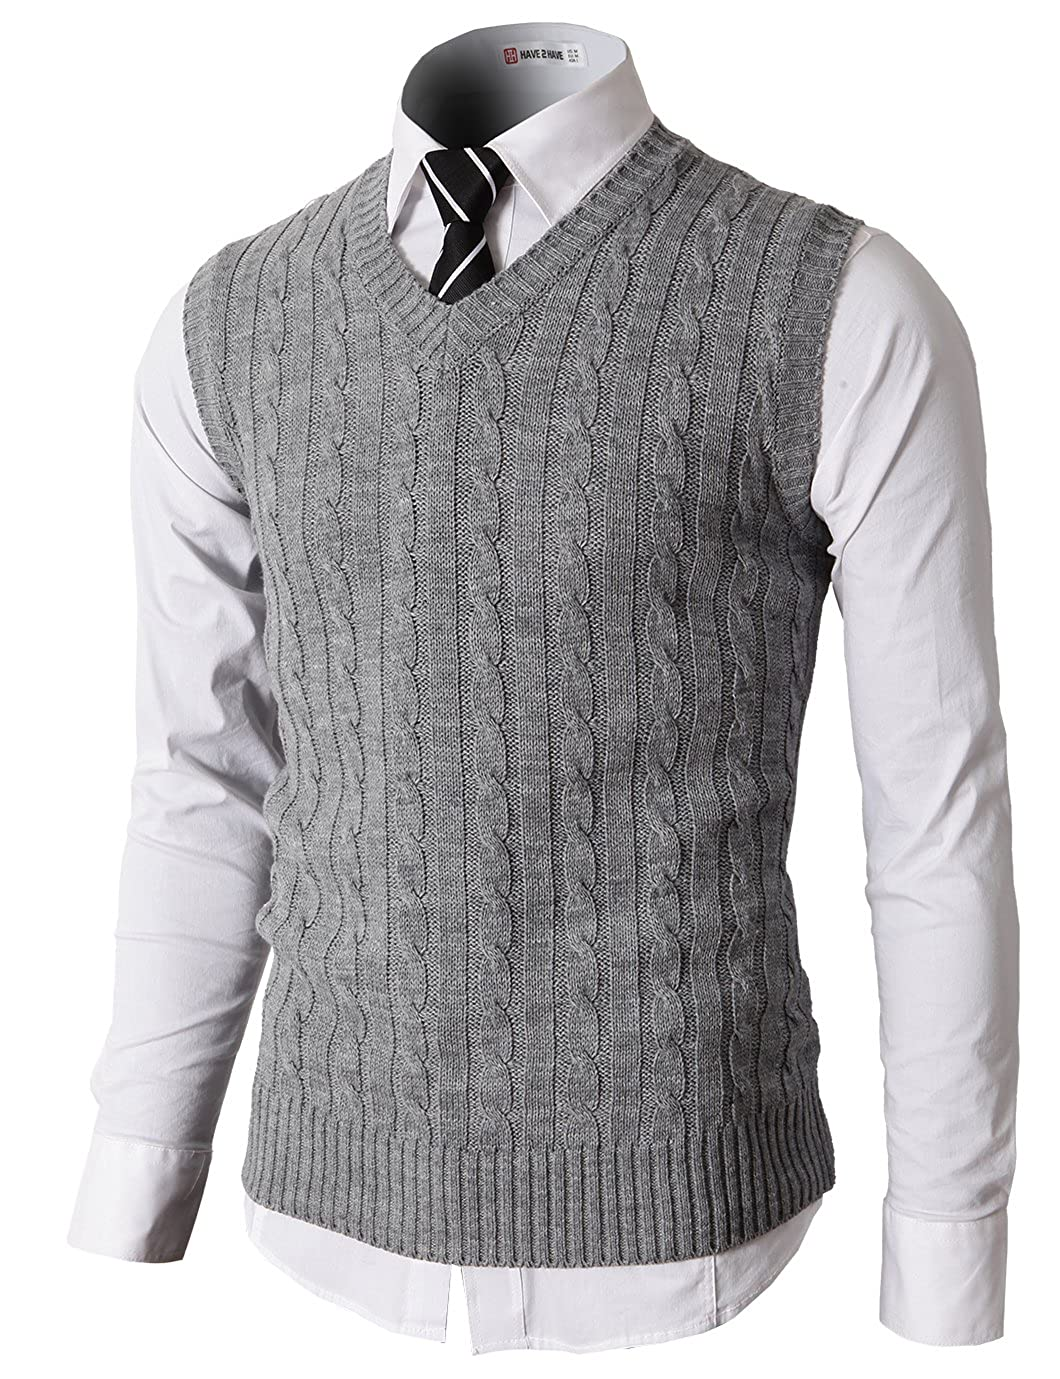 Men's Vintage Workwear – 1920s, 1930s, 1940s, 1950s H2H Mens Casual Knitted Slim Fit V-neck Vest With Twisted Patterned $26.80 AT vintagedancer.com